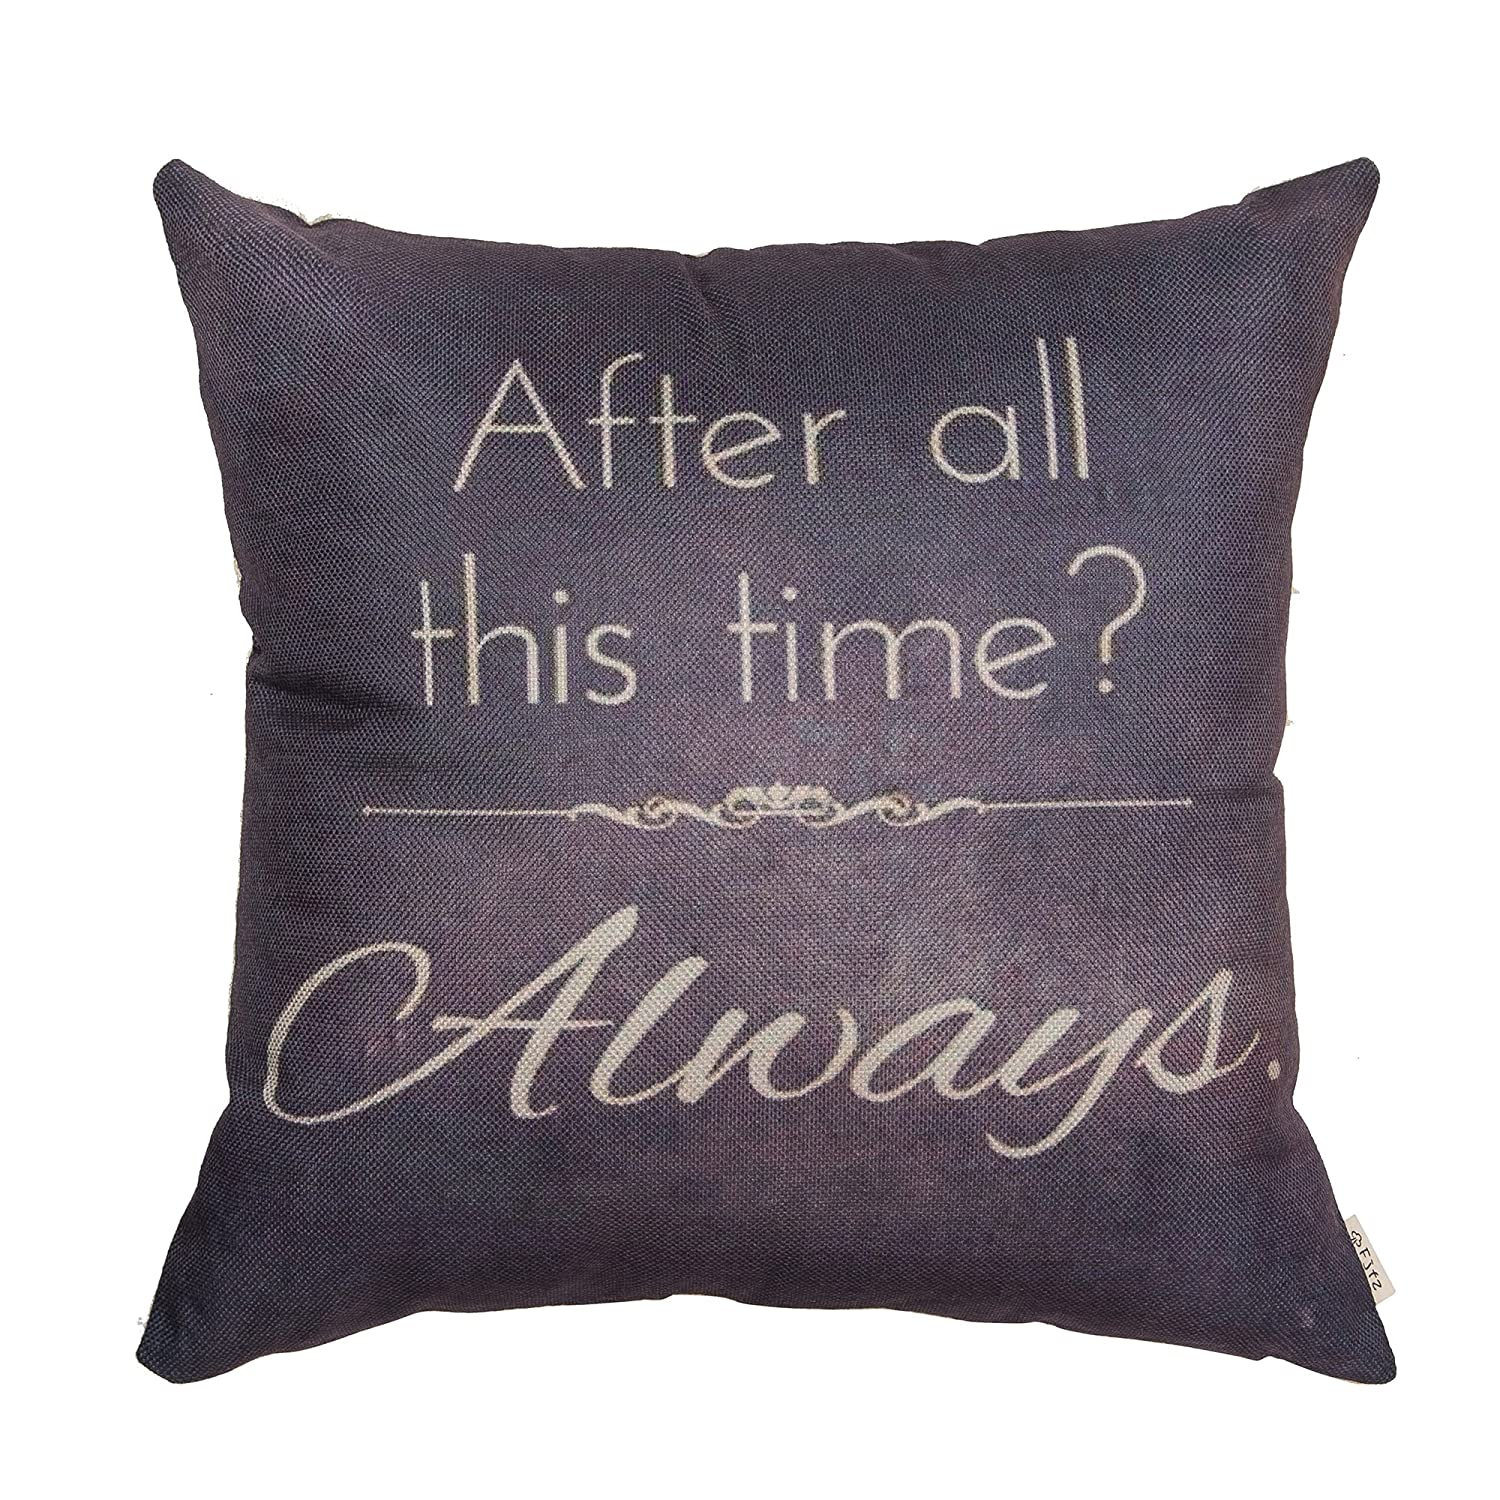 """Fjfz Retro Vintage After All This Time Always Motivational Sign Inspirational Quote Cotton Linen Home Decorative Throw Pillow Case Cushion Cover for Sofa Couch, Gray Brown,18"""" x 18"""""""